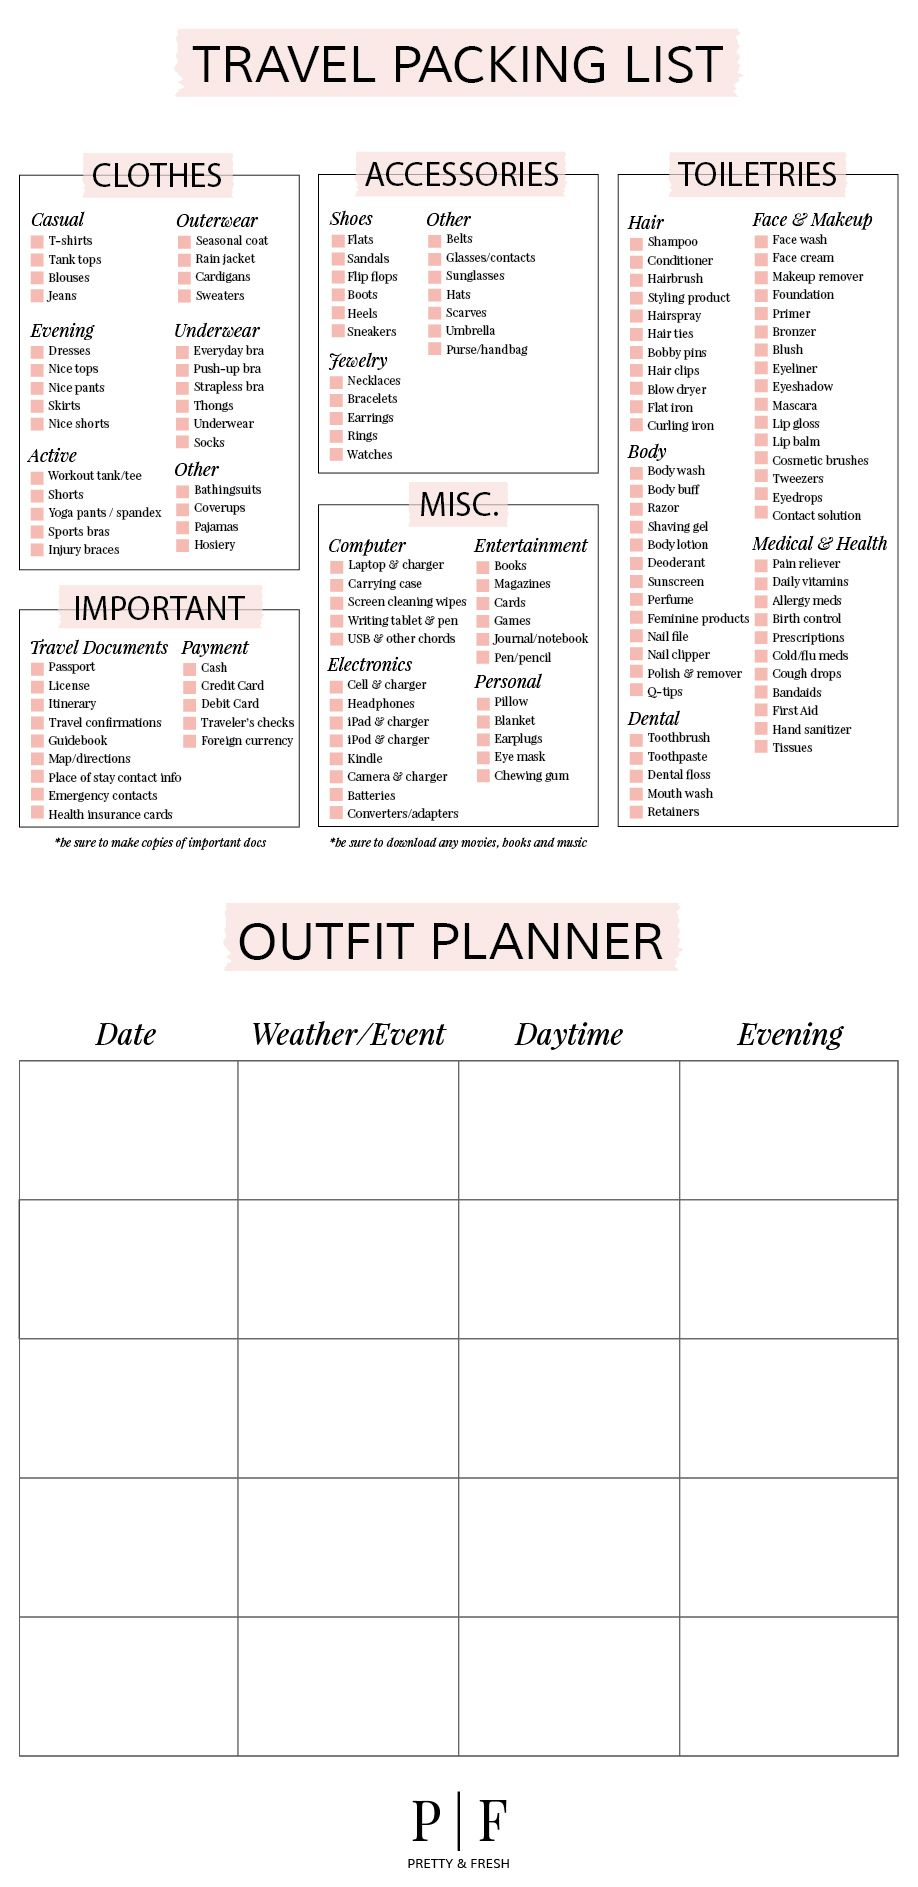 Packing Checklist & Outfit Planner | annies | Pinterest | Reise ...